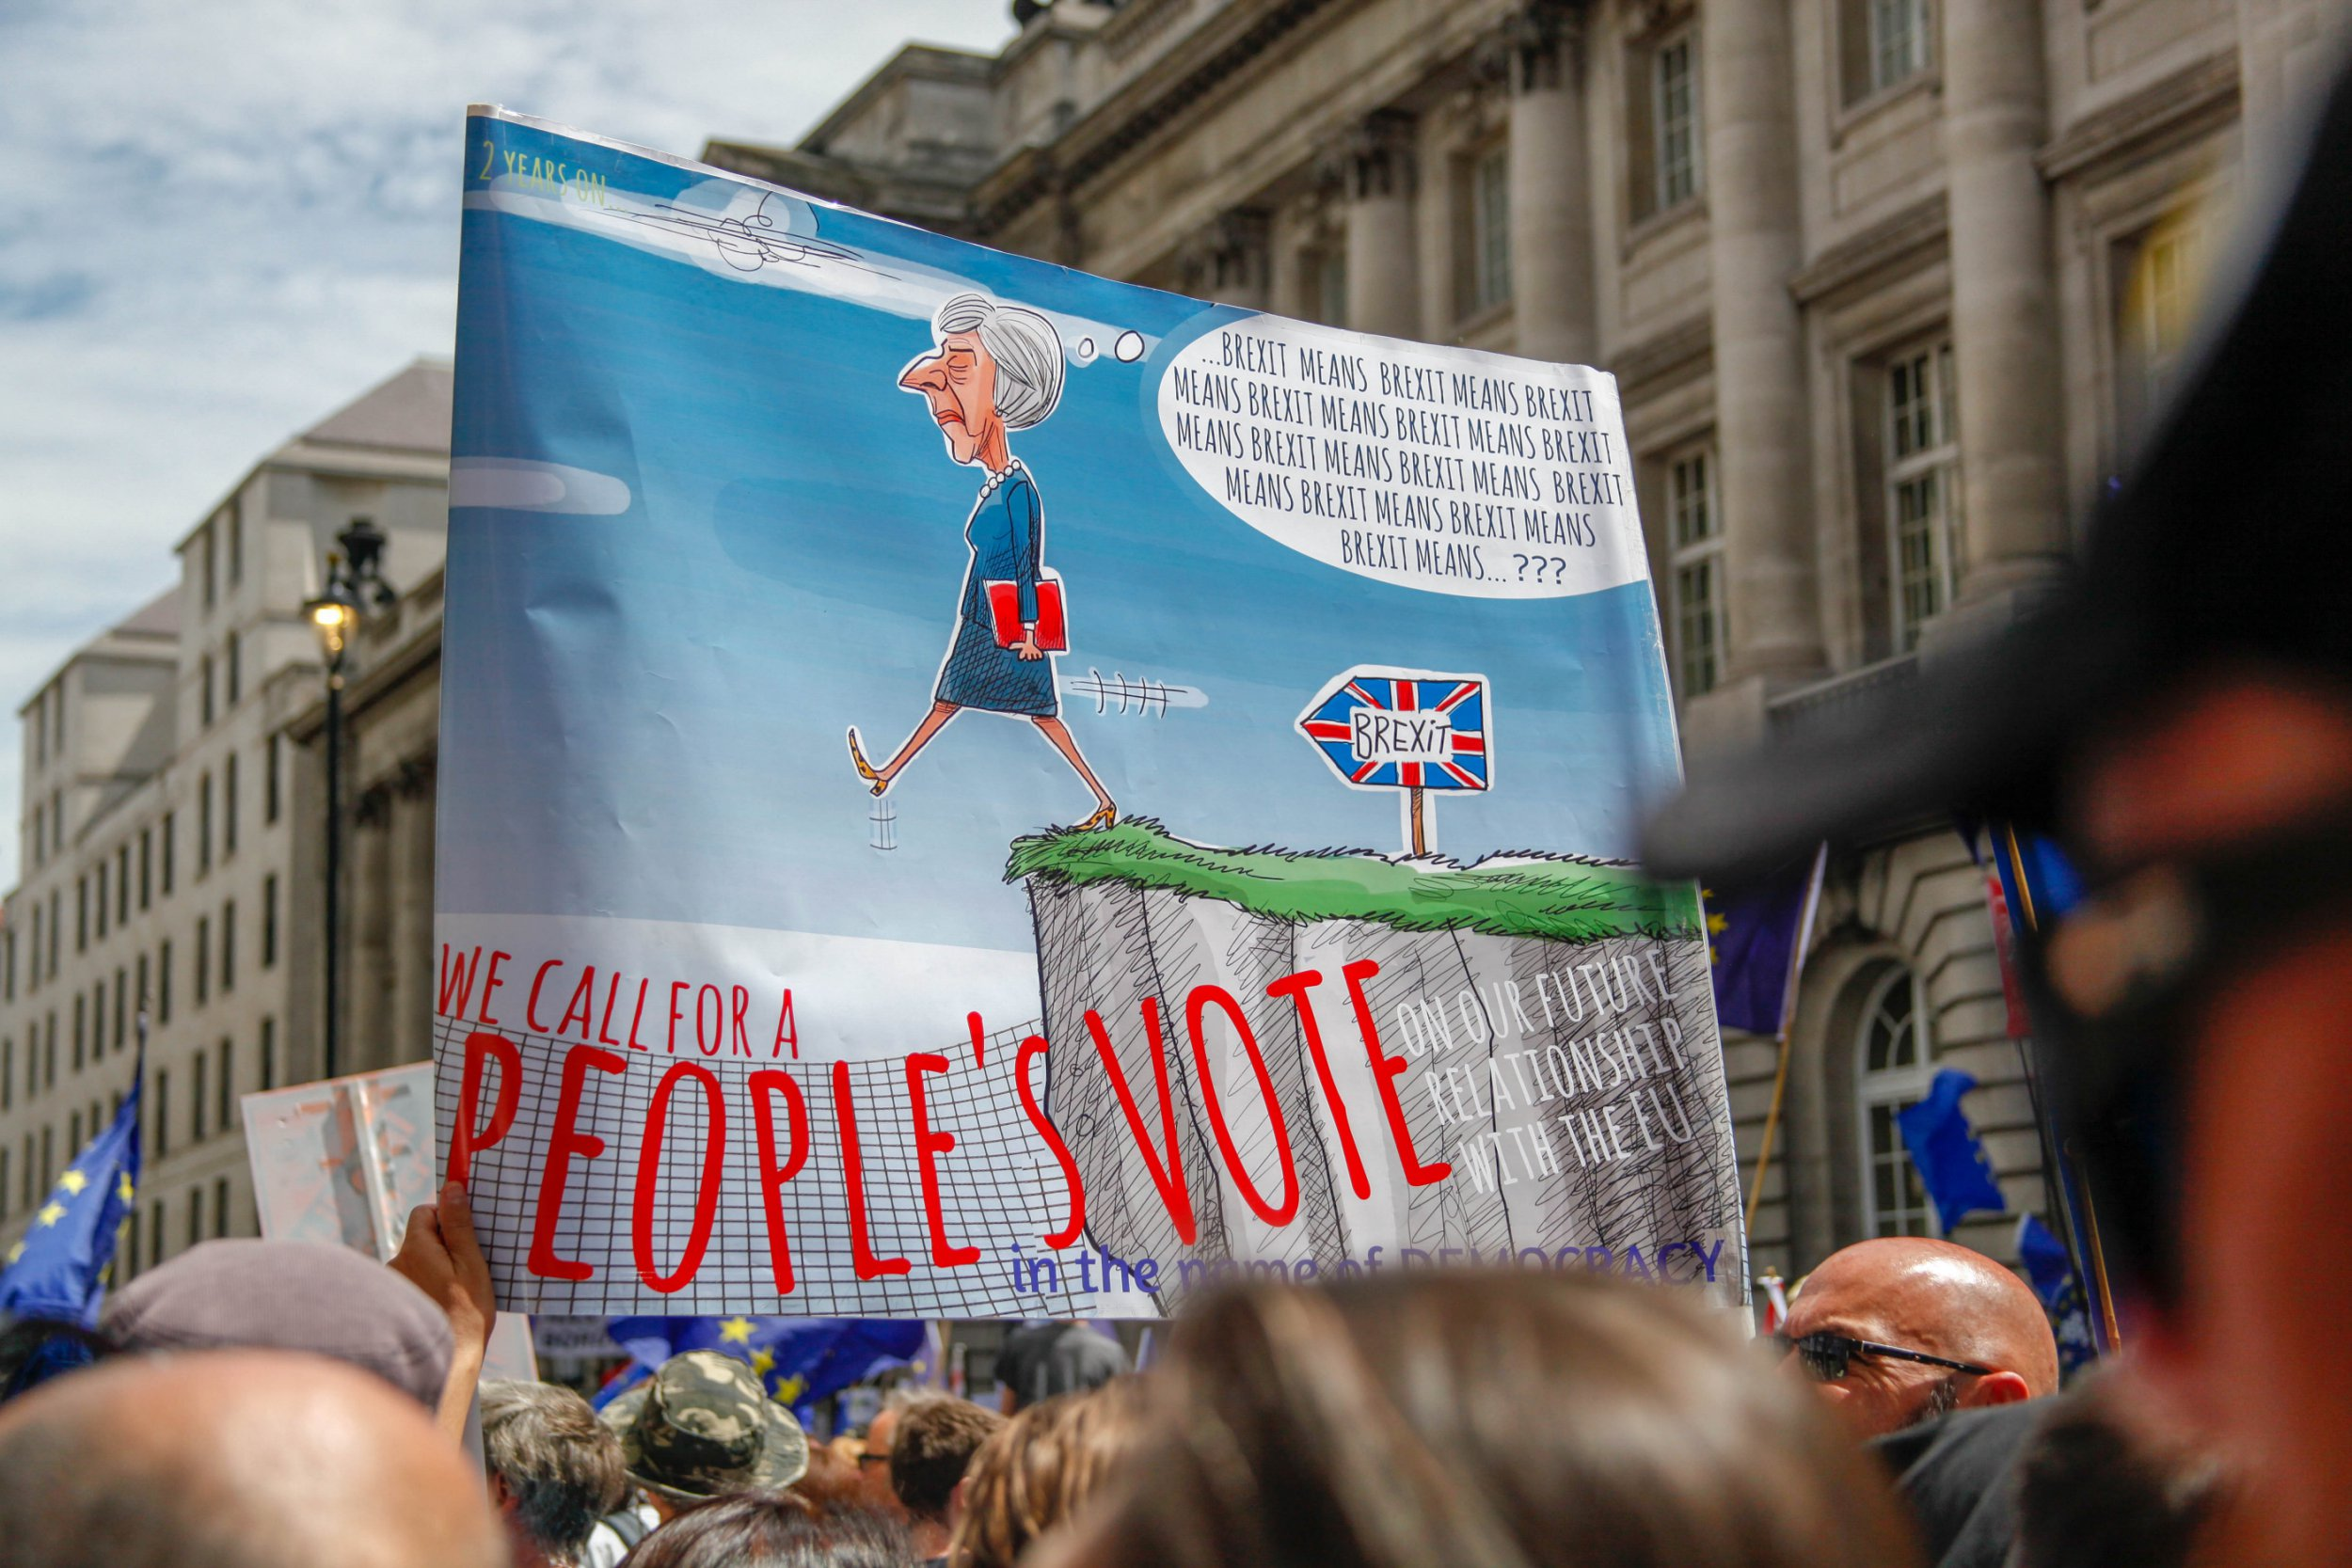 Protestors march during the People's Vote demonstration against Brexit on June 23, 2018 in London, England. On the second anniversary of the 2016 Brexit referendum, the People's Vote Campaign organised a march to Parliament calling for a People's Vote on the final draft of the EU Withdrawal Bill. (Photo by Alex Cavendish/NurPhoto/Sipa USA)